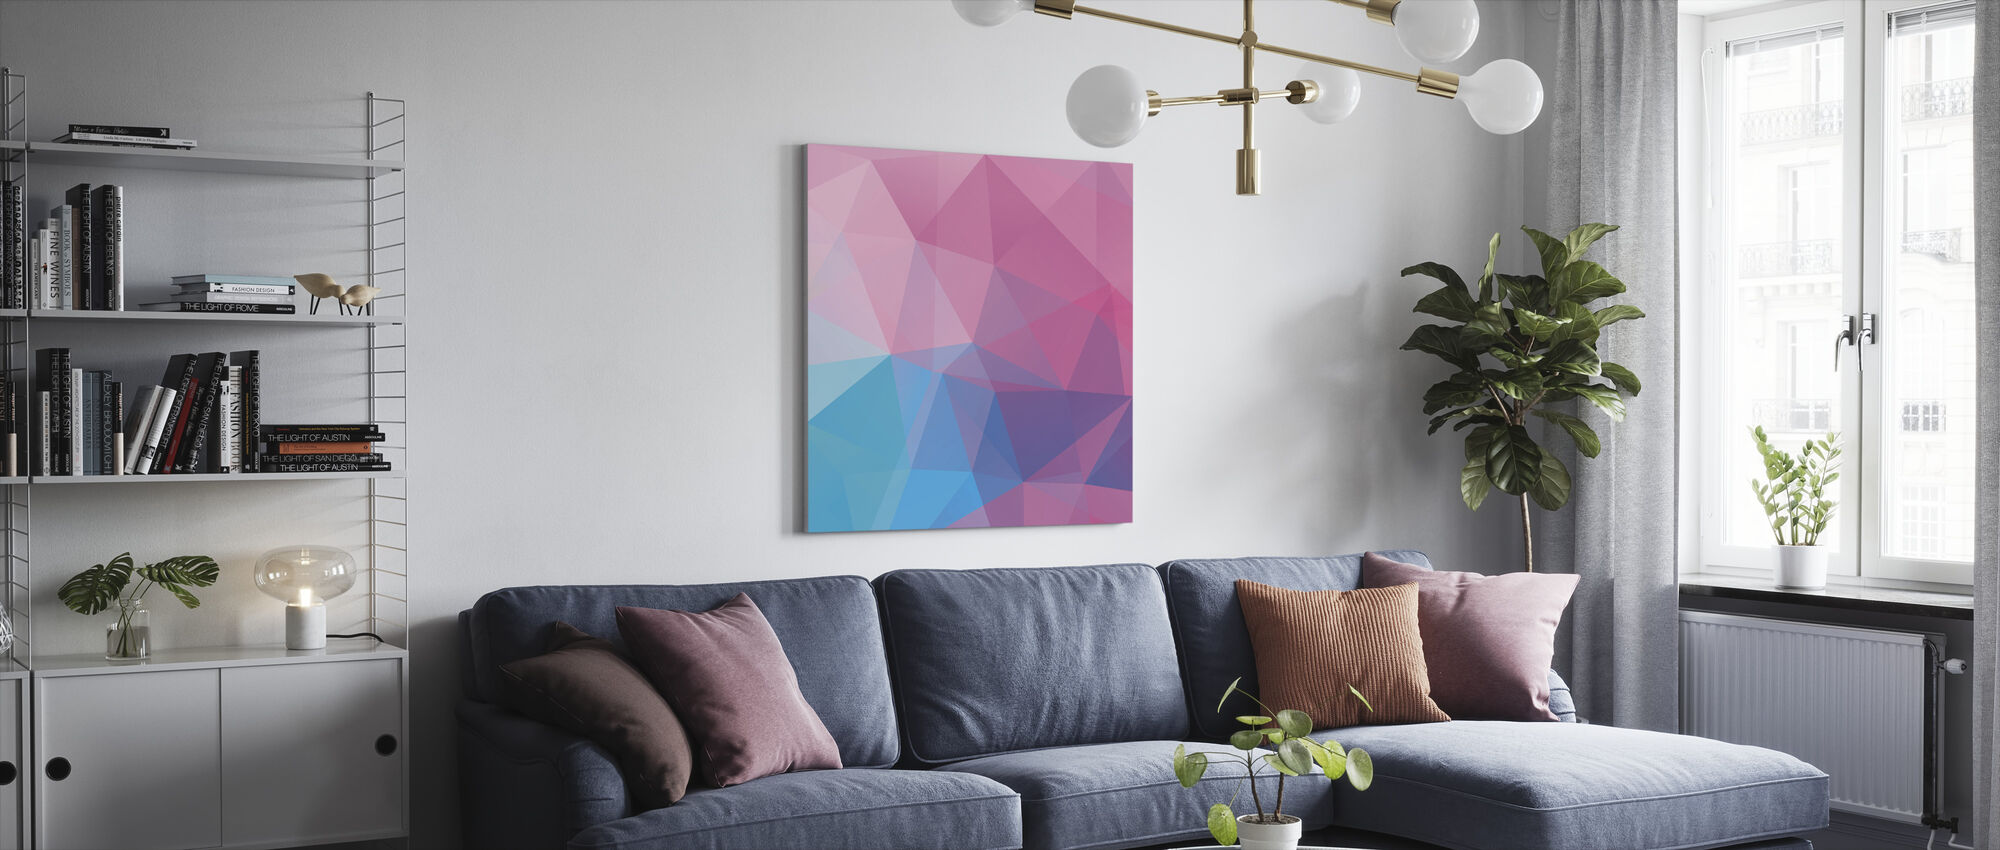 Polygonal Pastels - Canvas print - Living Room